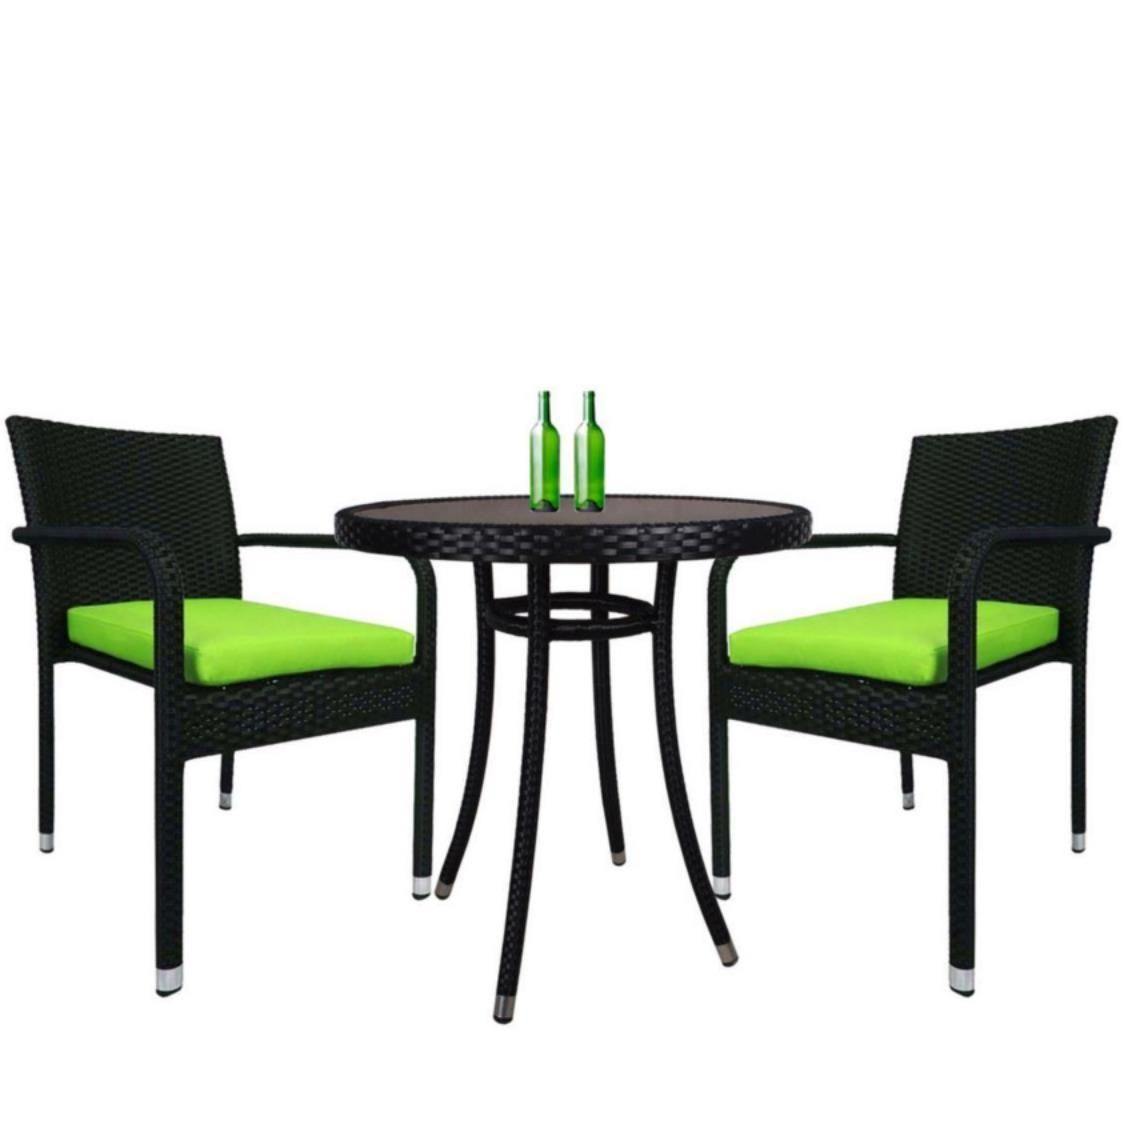 Balcony 2 Chair Bistro Set Green Cushion